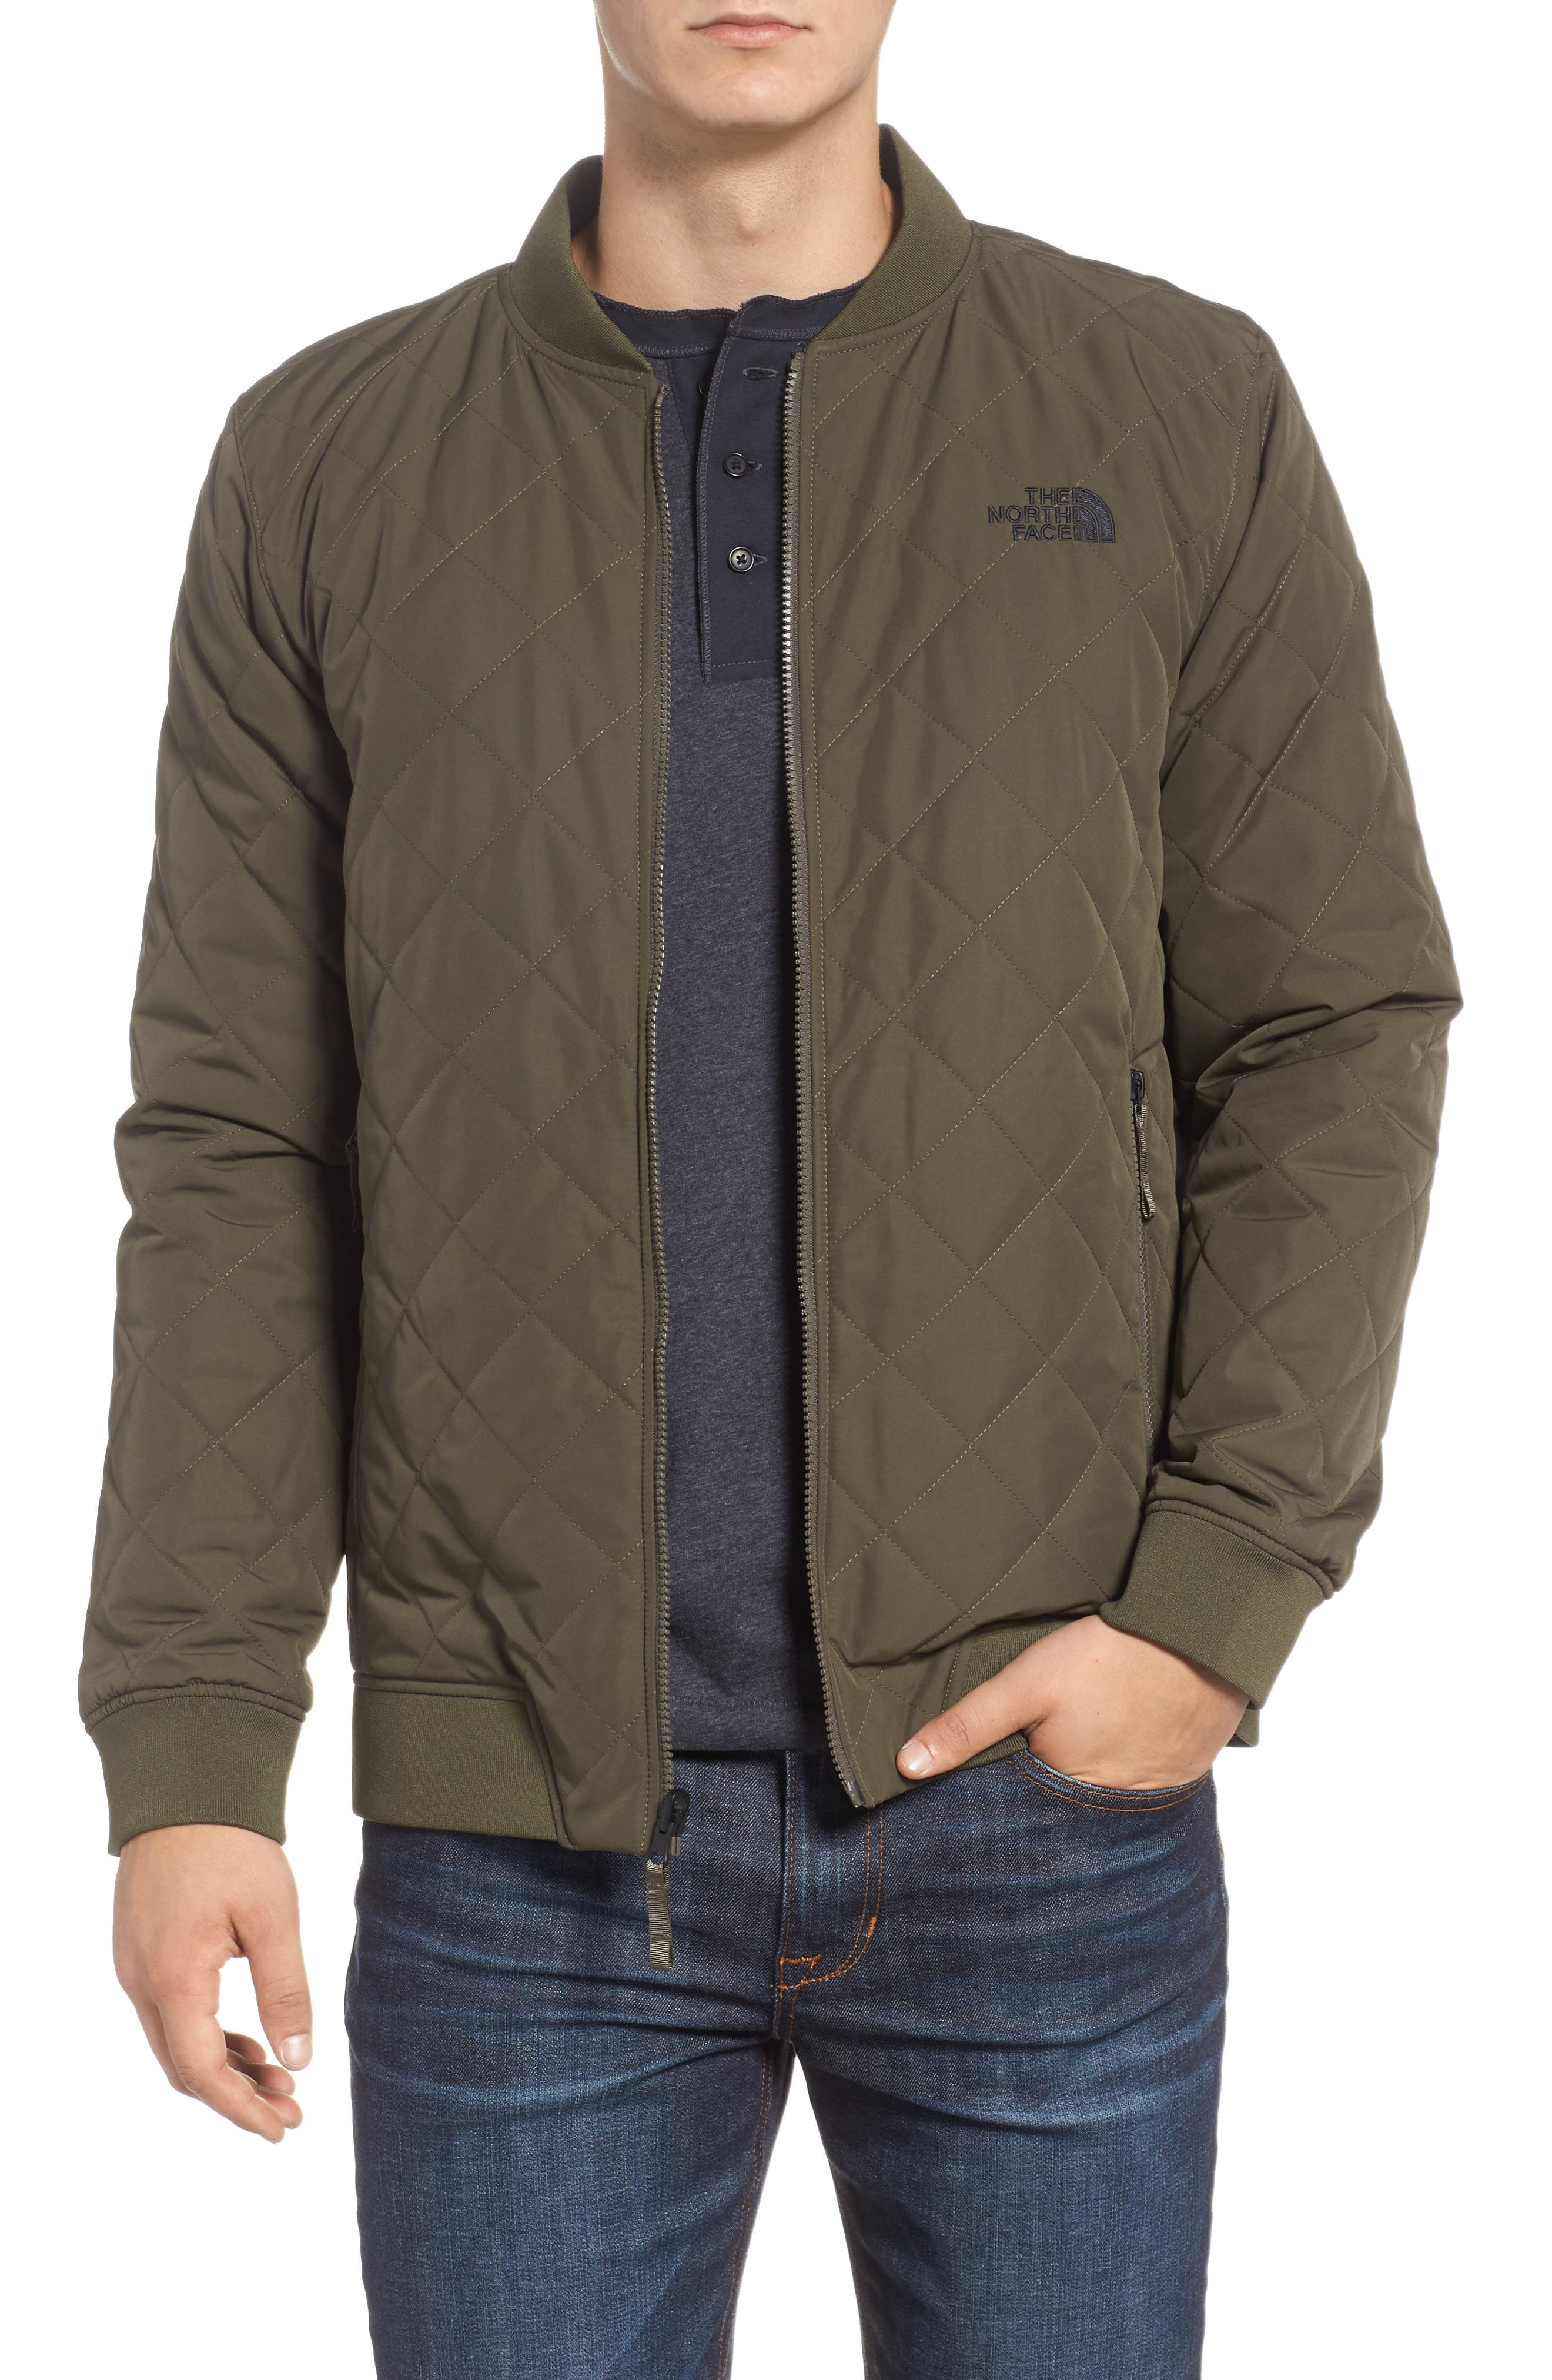 THE NORTH FACE Jester Reversible Bomber Jacket, Main, color, NEW TAUPE GREEN